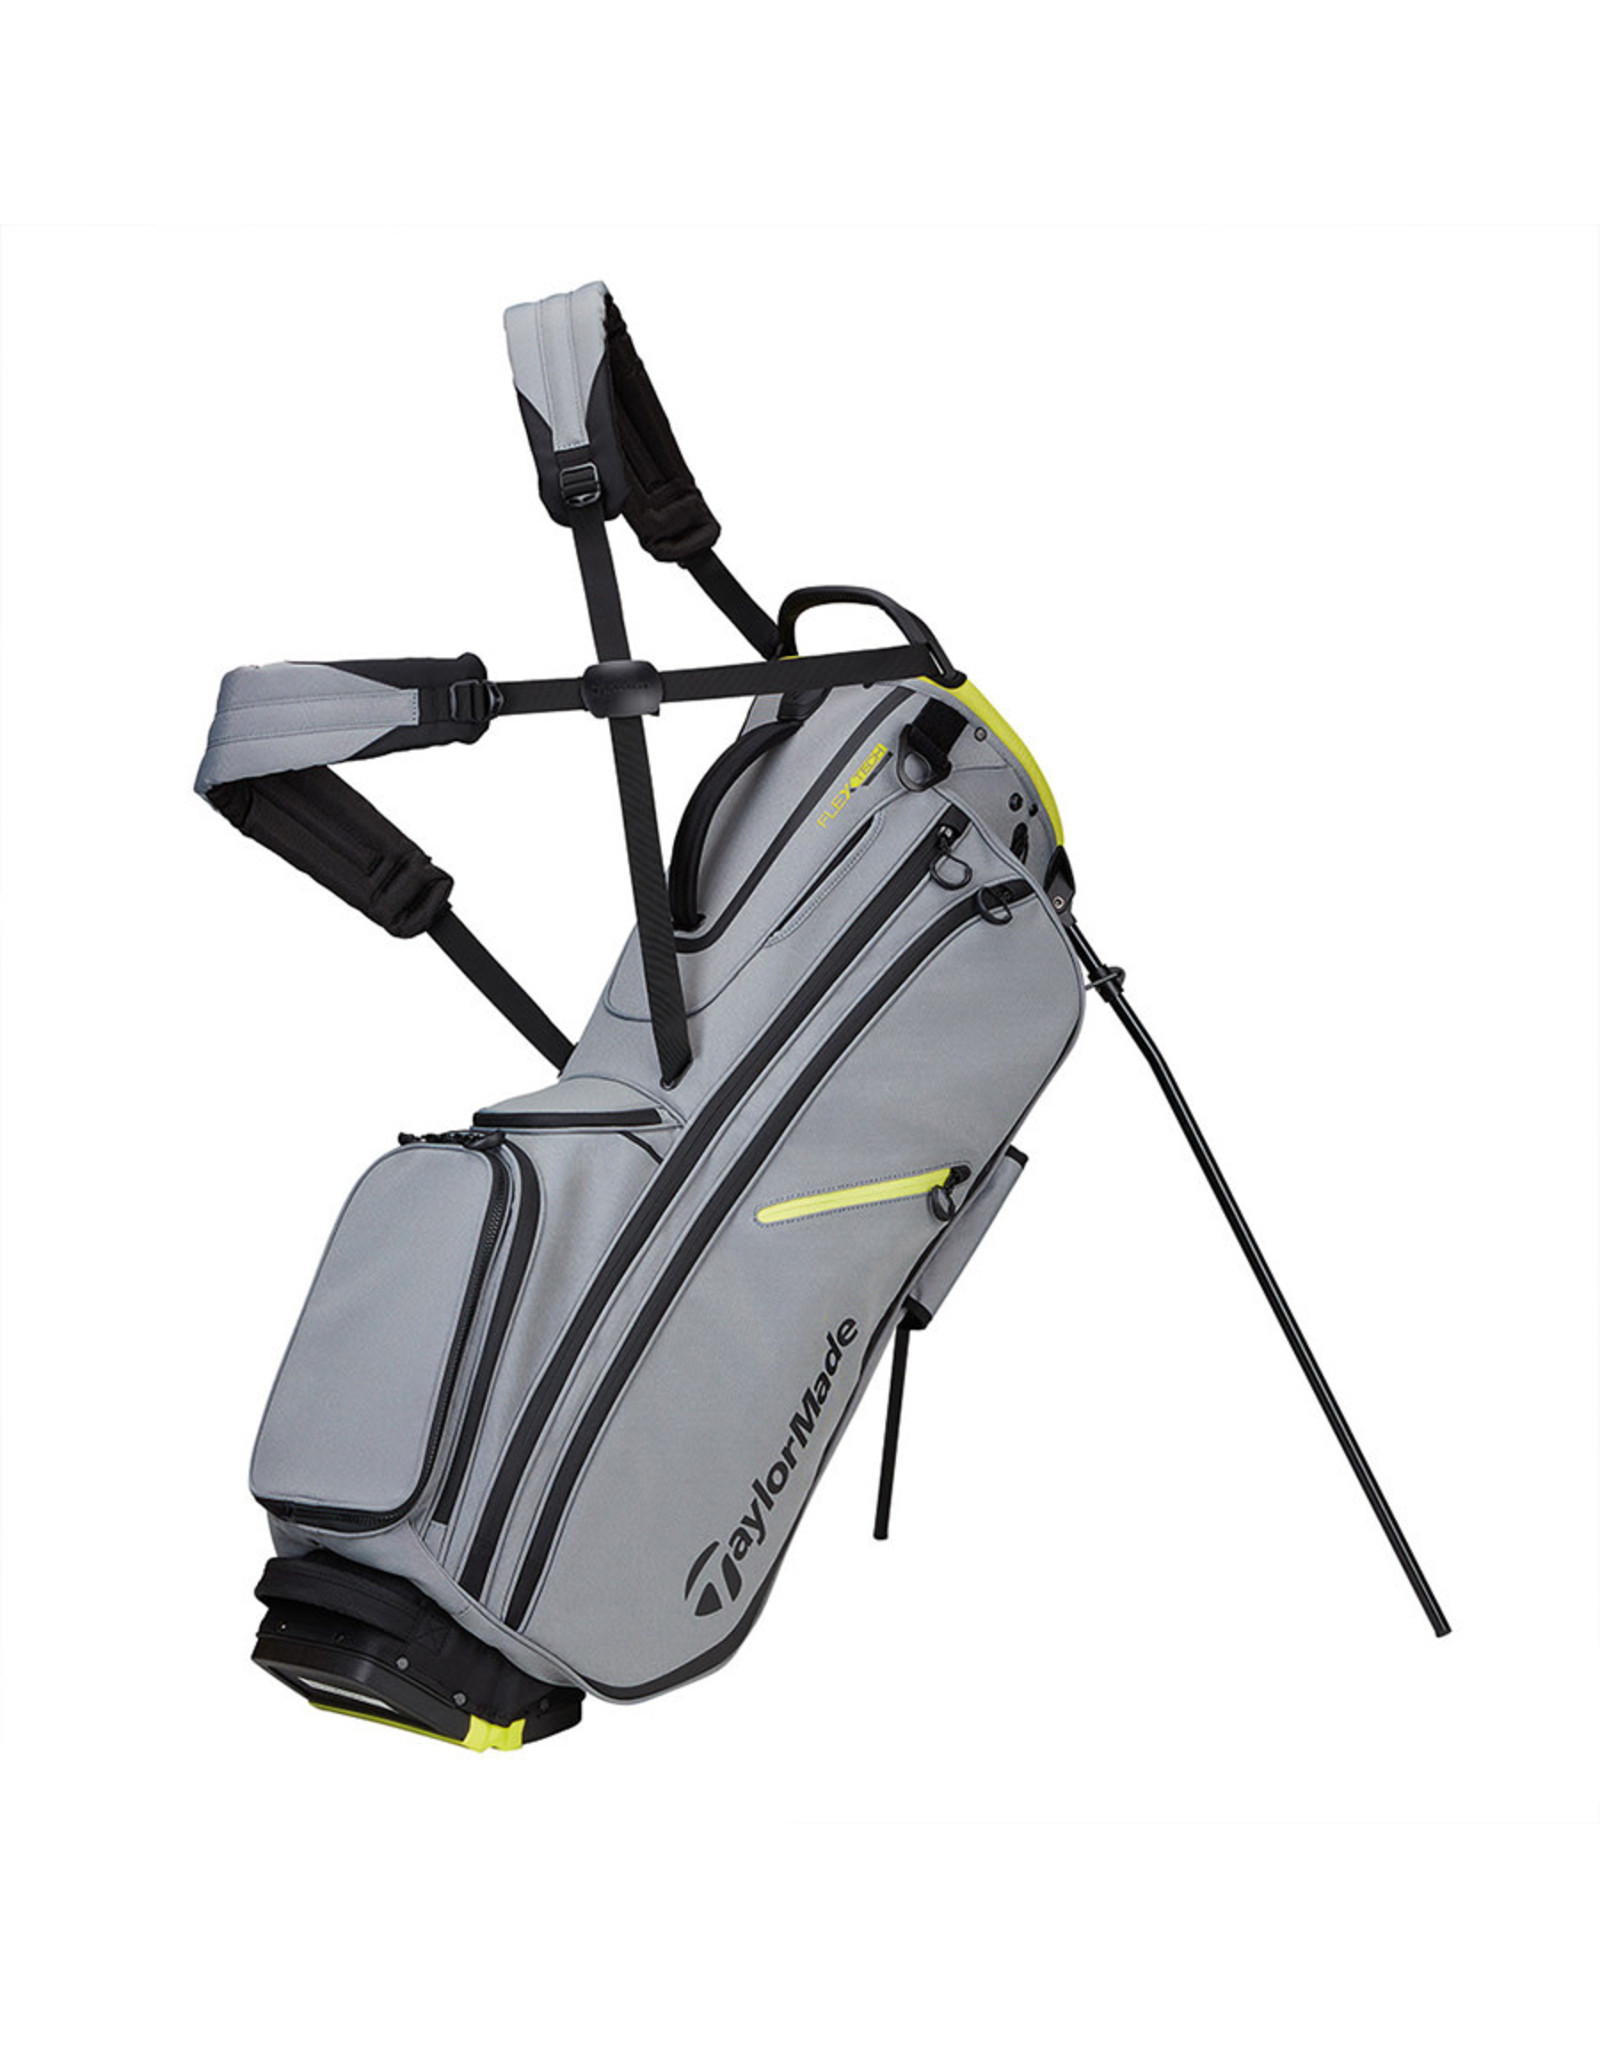 Taylormade Taylormade FlexTech Crossover Stand Bags